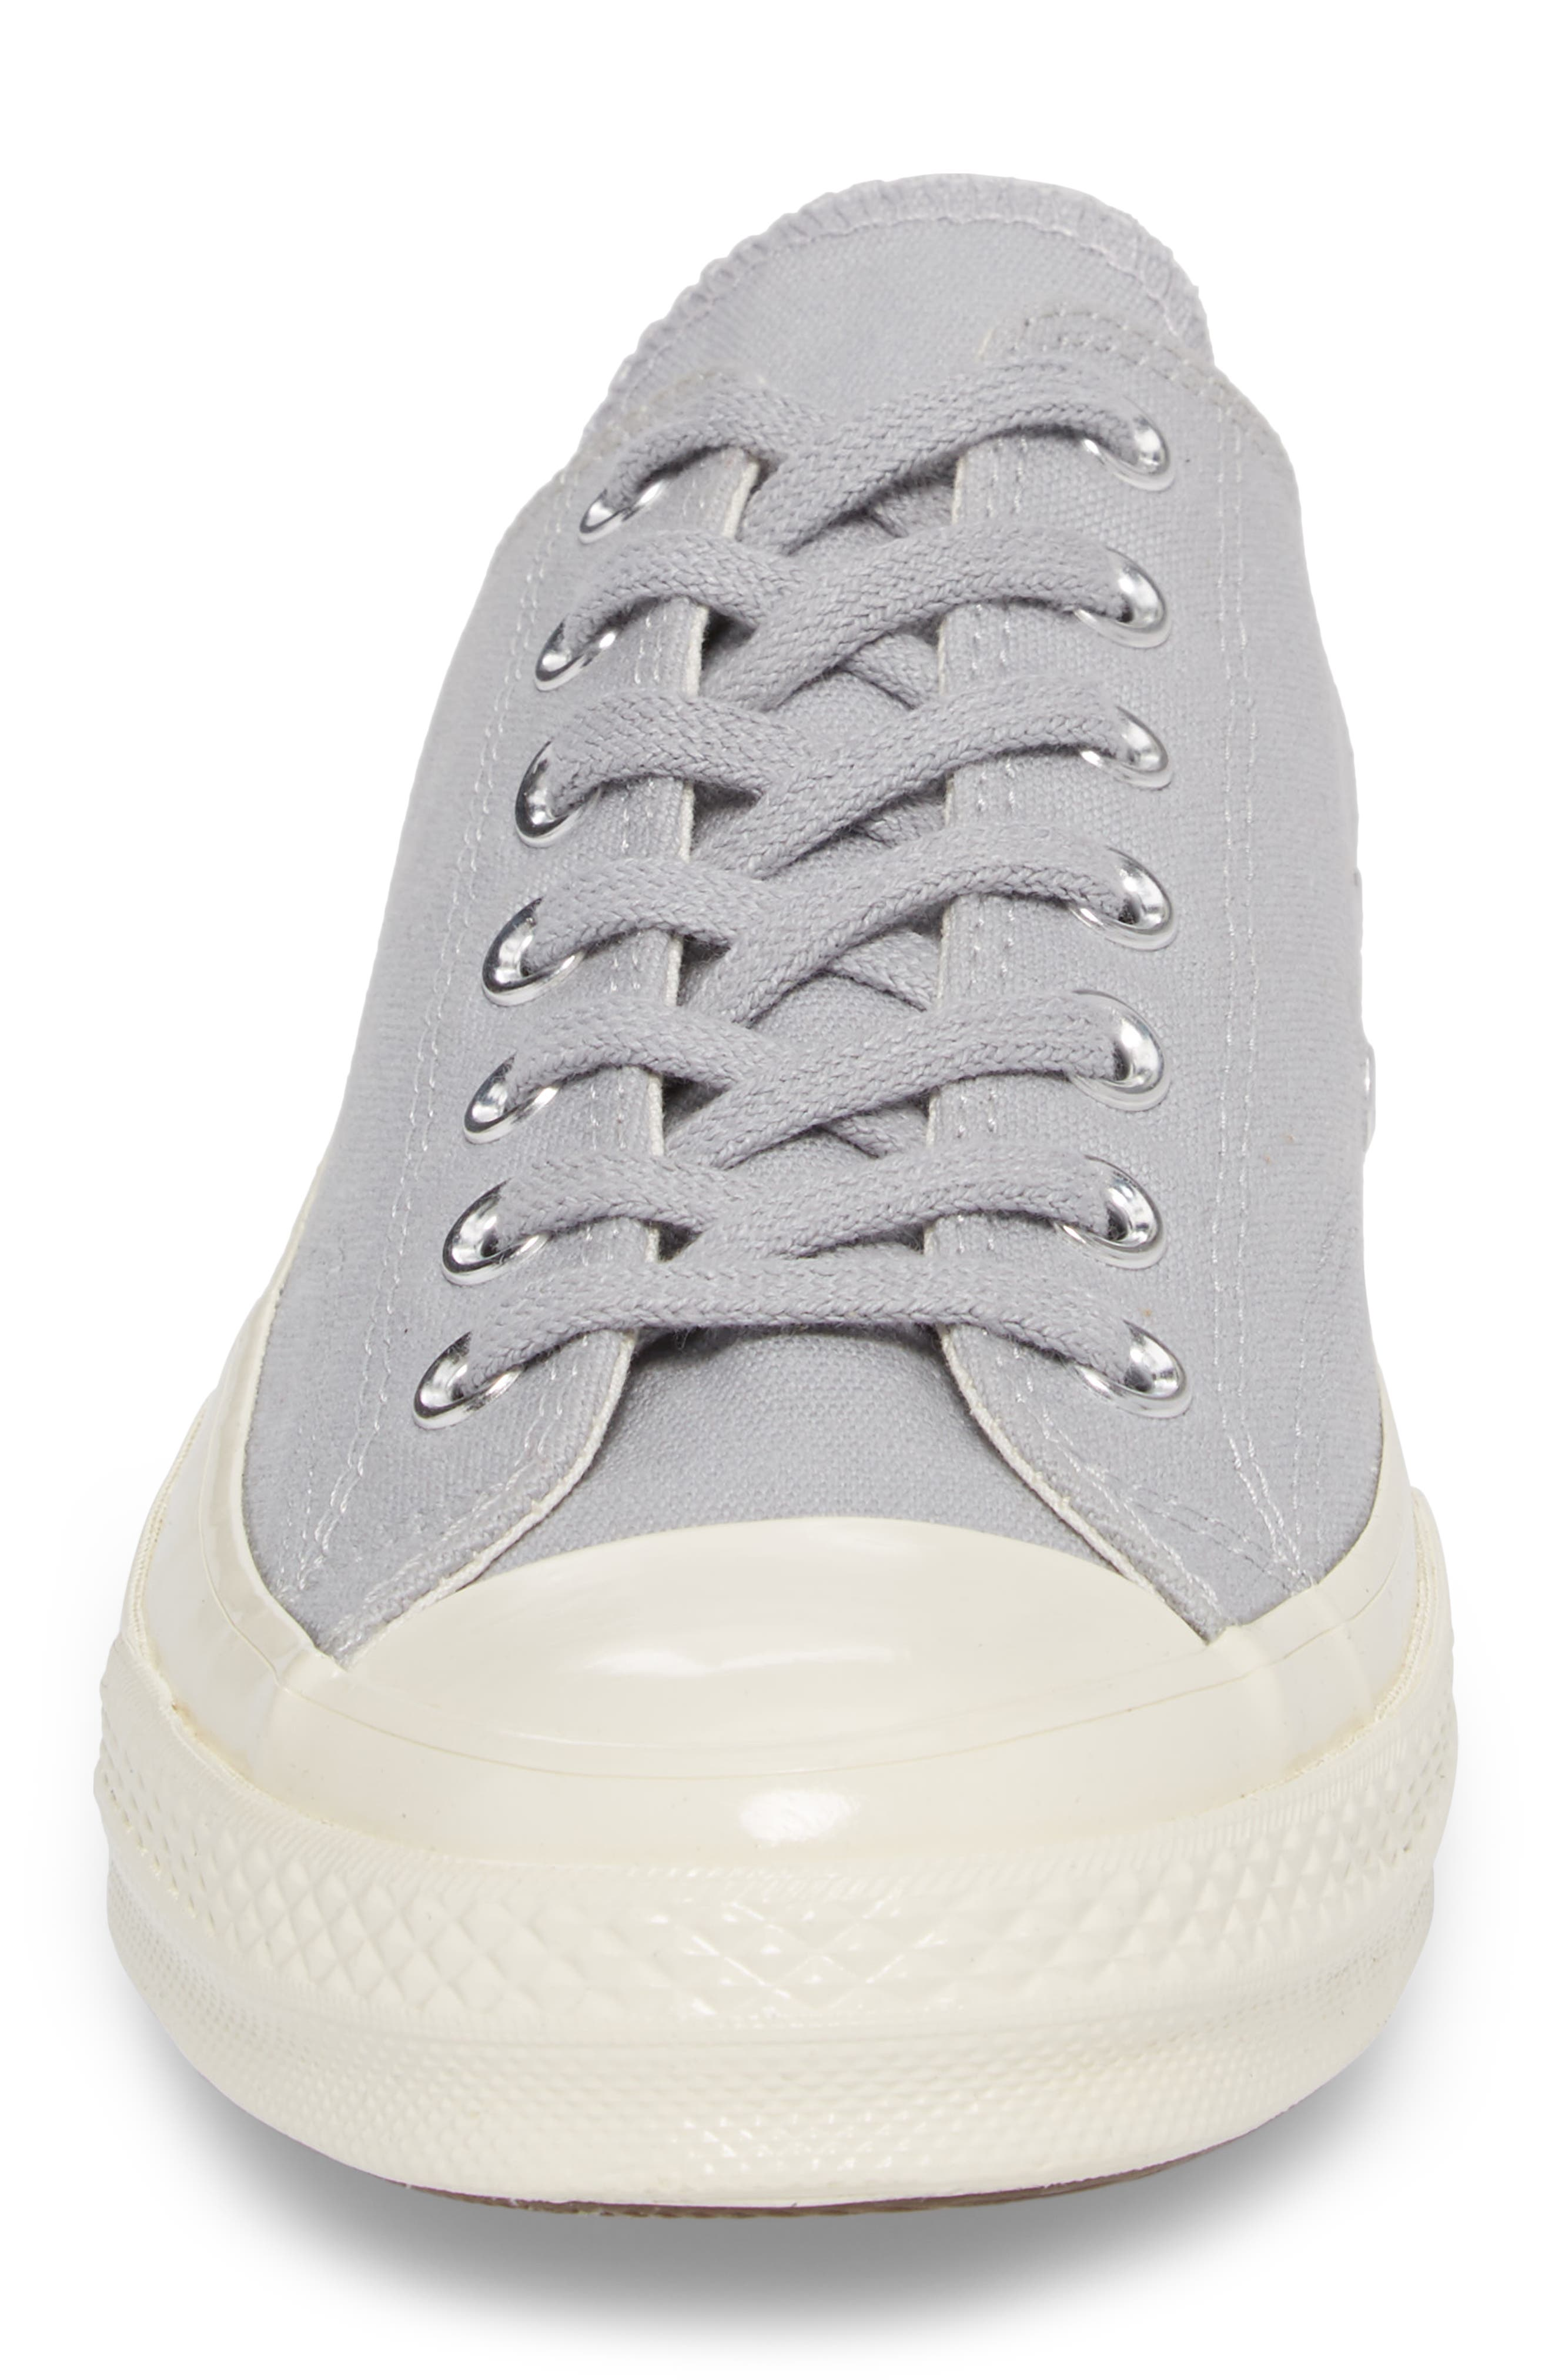 CONVERSE,                             Chuck Taylor<sup>®</sup> All Star<sup>®</sup> 70 Heritage Low Top Sneaker,                             Alternate thumbnail 4, color,                             097